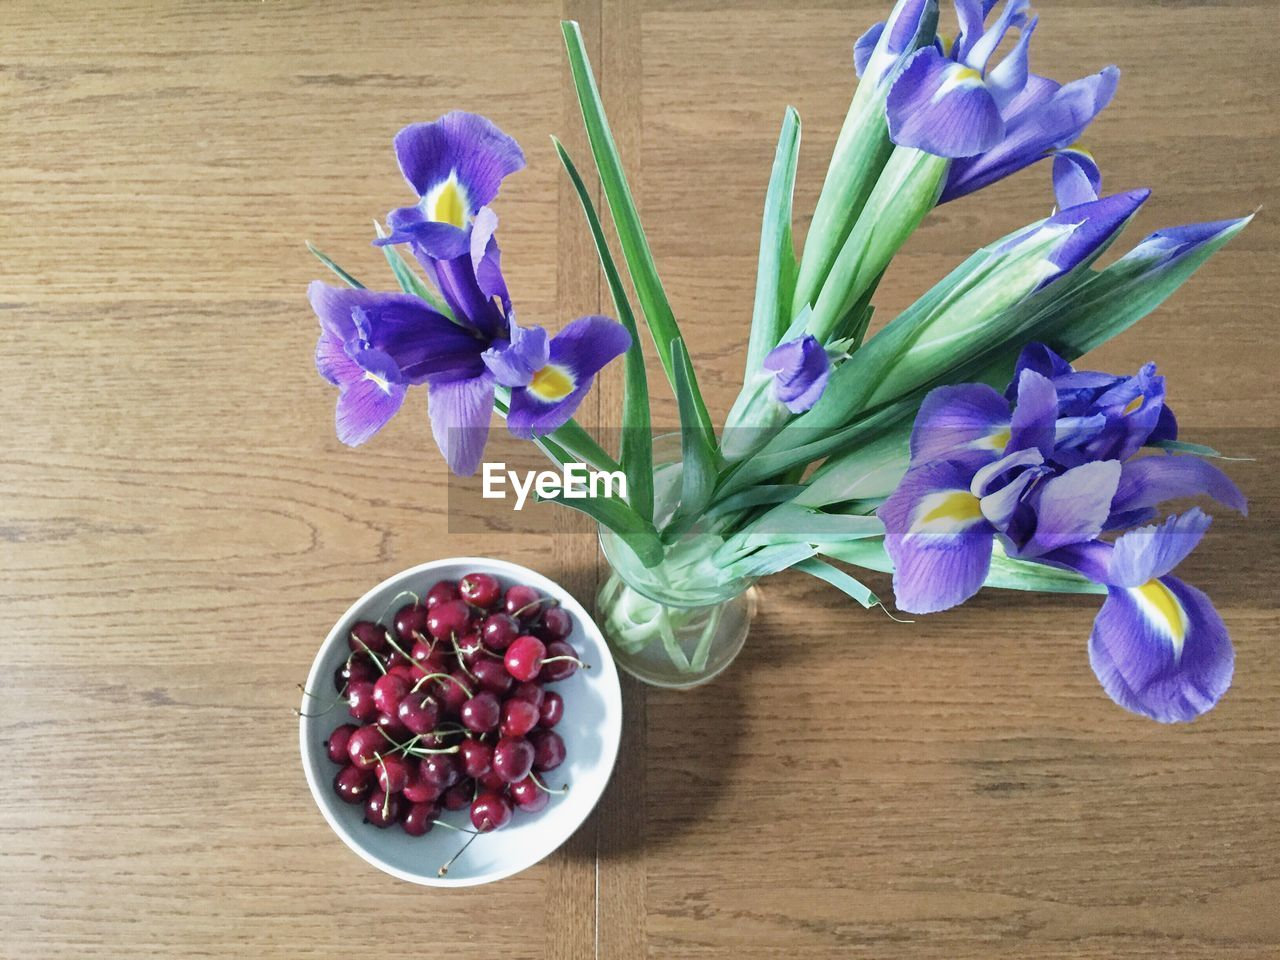 High Angle View Of Iris Flowers In Vase By Cherries On Table